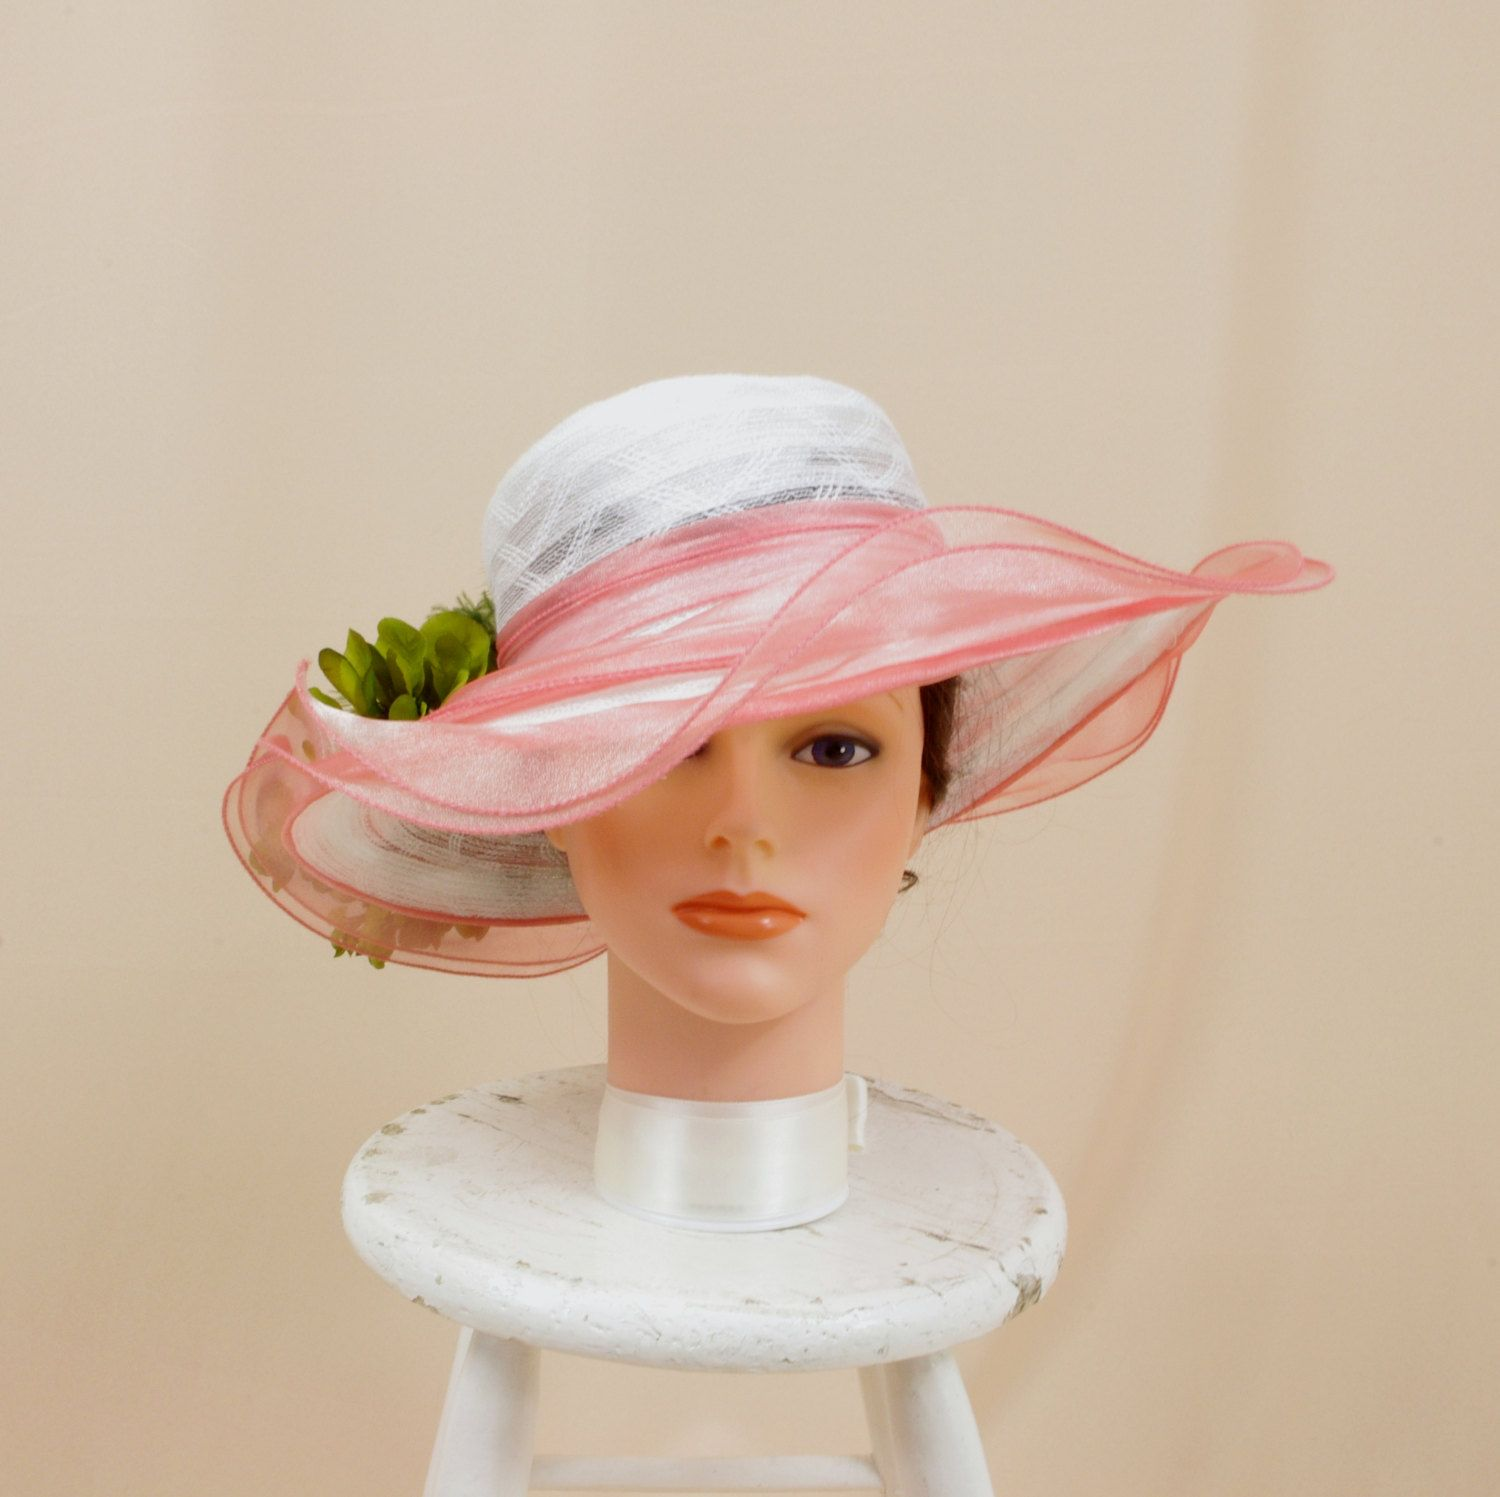 2db24130063 Salmon Pink and White Hat   White Floppy Hat   Kentucky Derby Hat   Pink  and Green Hat   Church Hat   Wedding Hat   Floral Hat   Formal Hat by ...